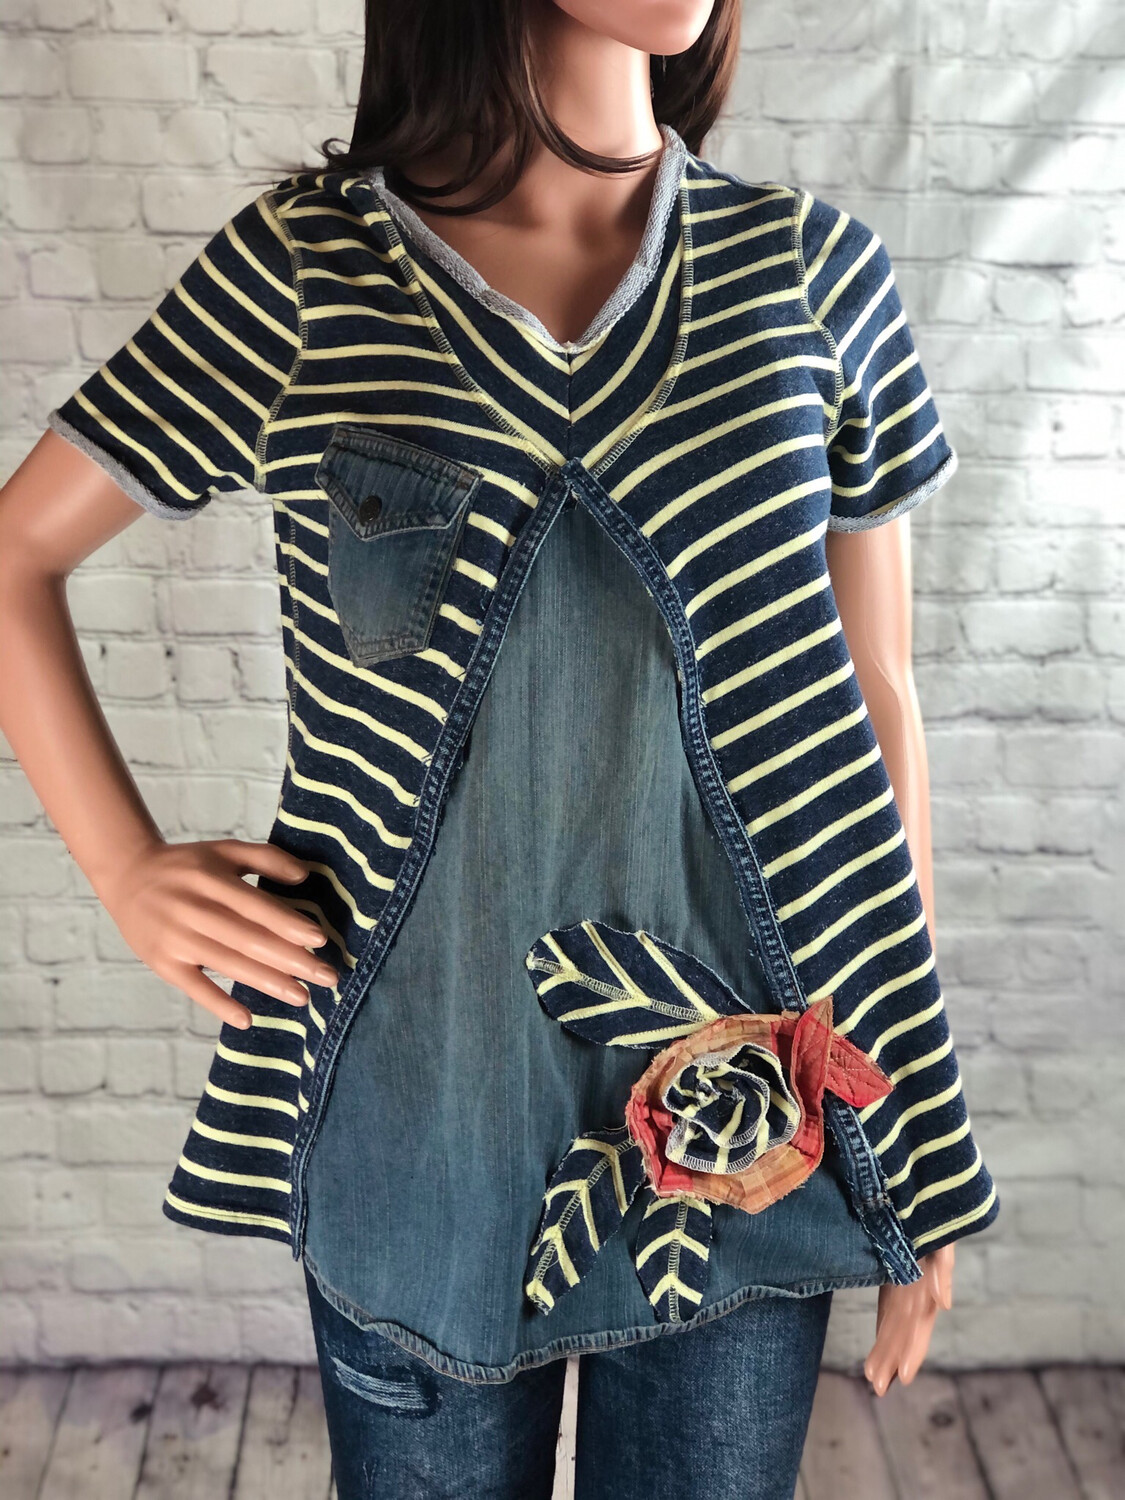 S Threads Handmade Striped Jean Top W Fabric Flower Size Large